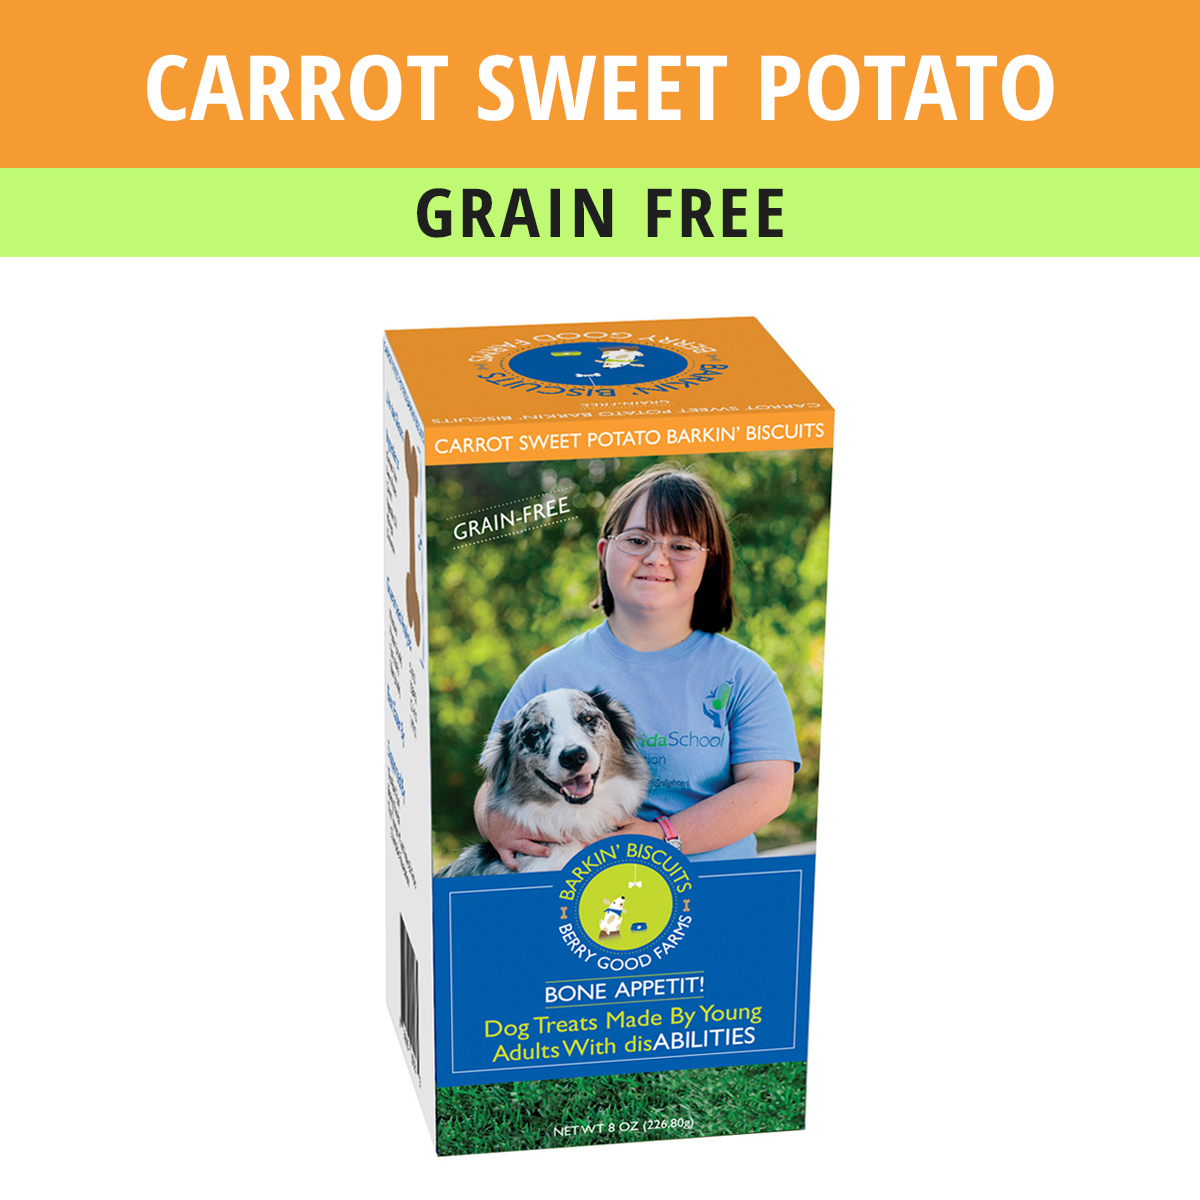 grain free dog treats - barkin biscuits carrot sweet potato